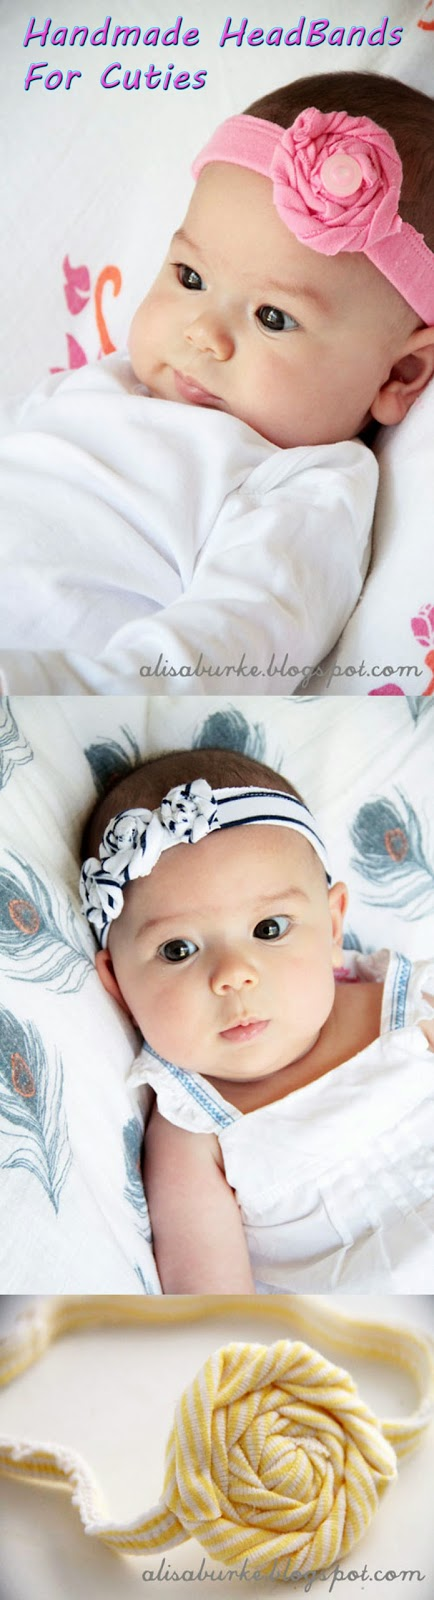 Cutest Handmade Baby HeadBands